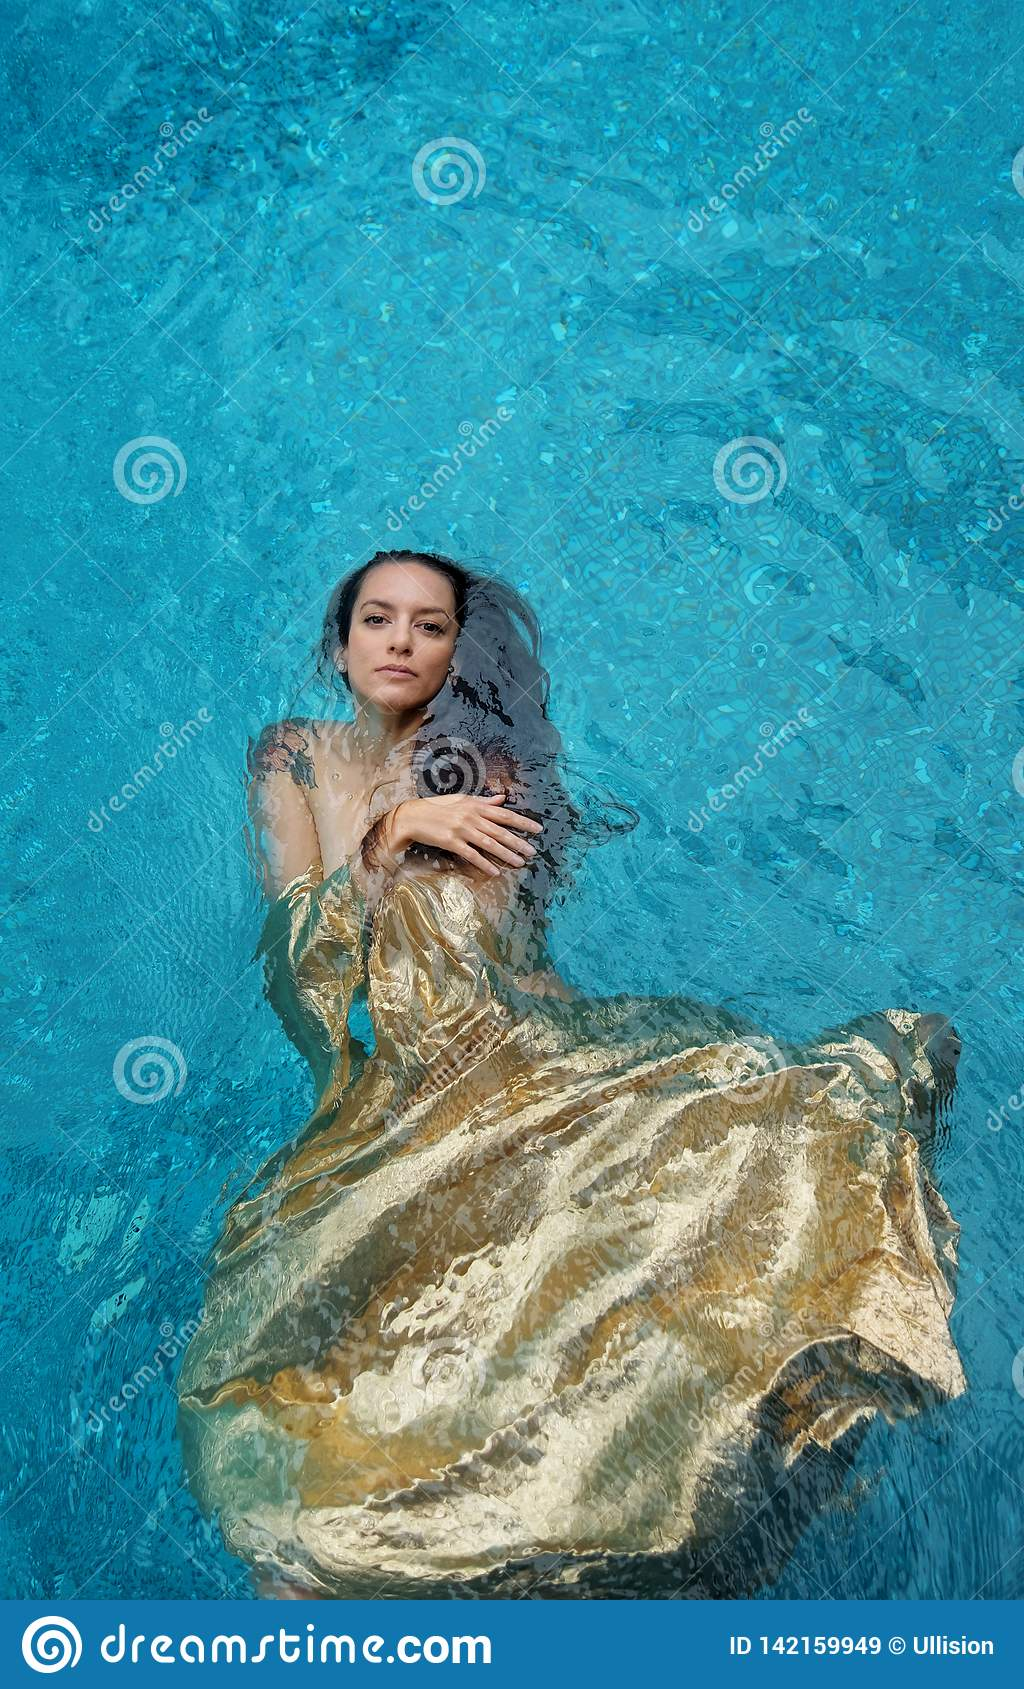 Beautiful young proud woman in golden dress, evening dress floating weightlessly elegant floating in the water in the pool dark